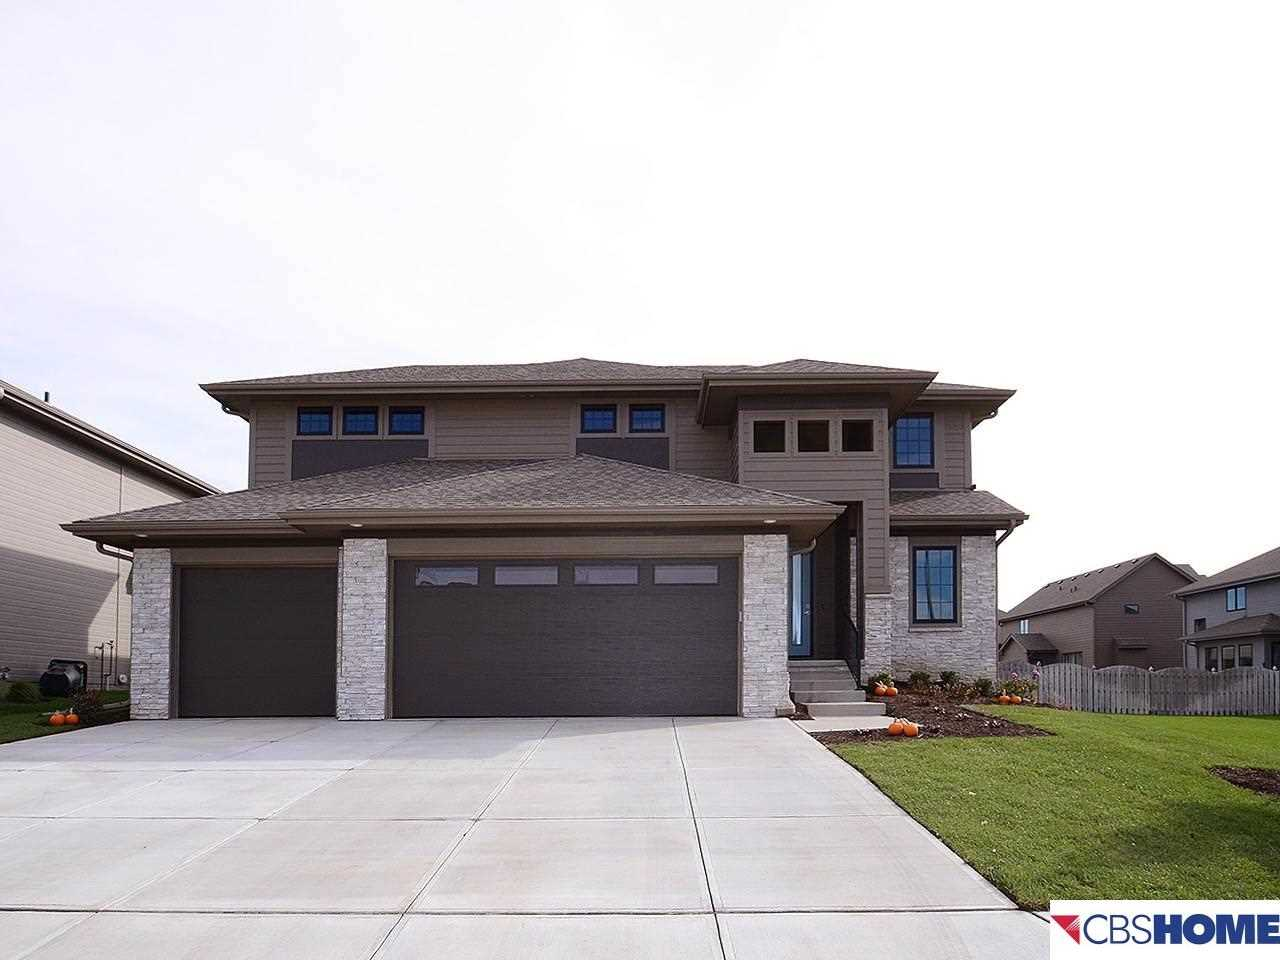 3811 N 190th Elkhorn, NE 68022 | MLS 21800091 Photo 1